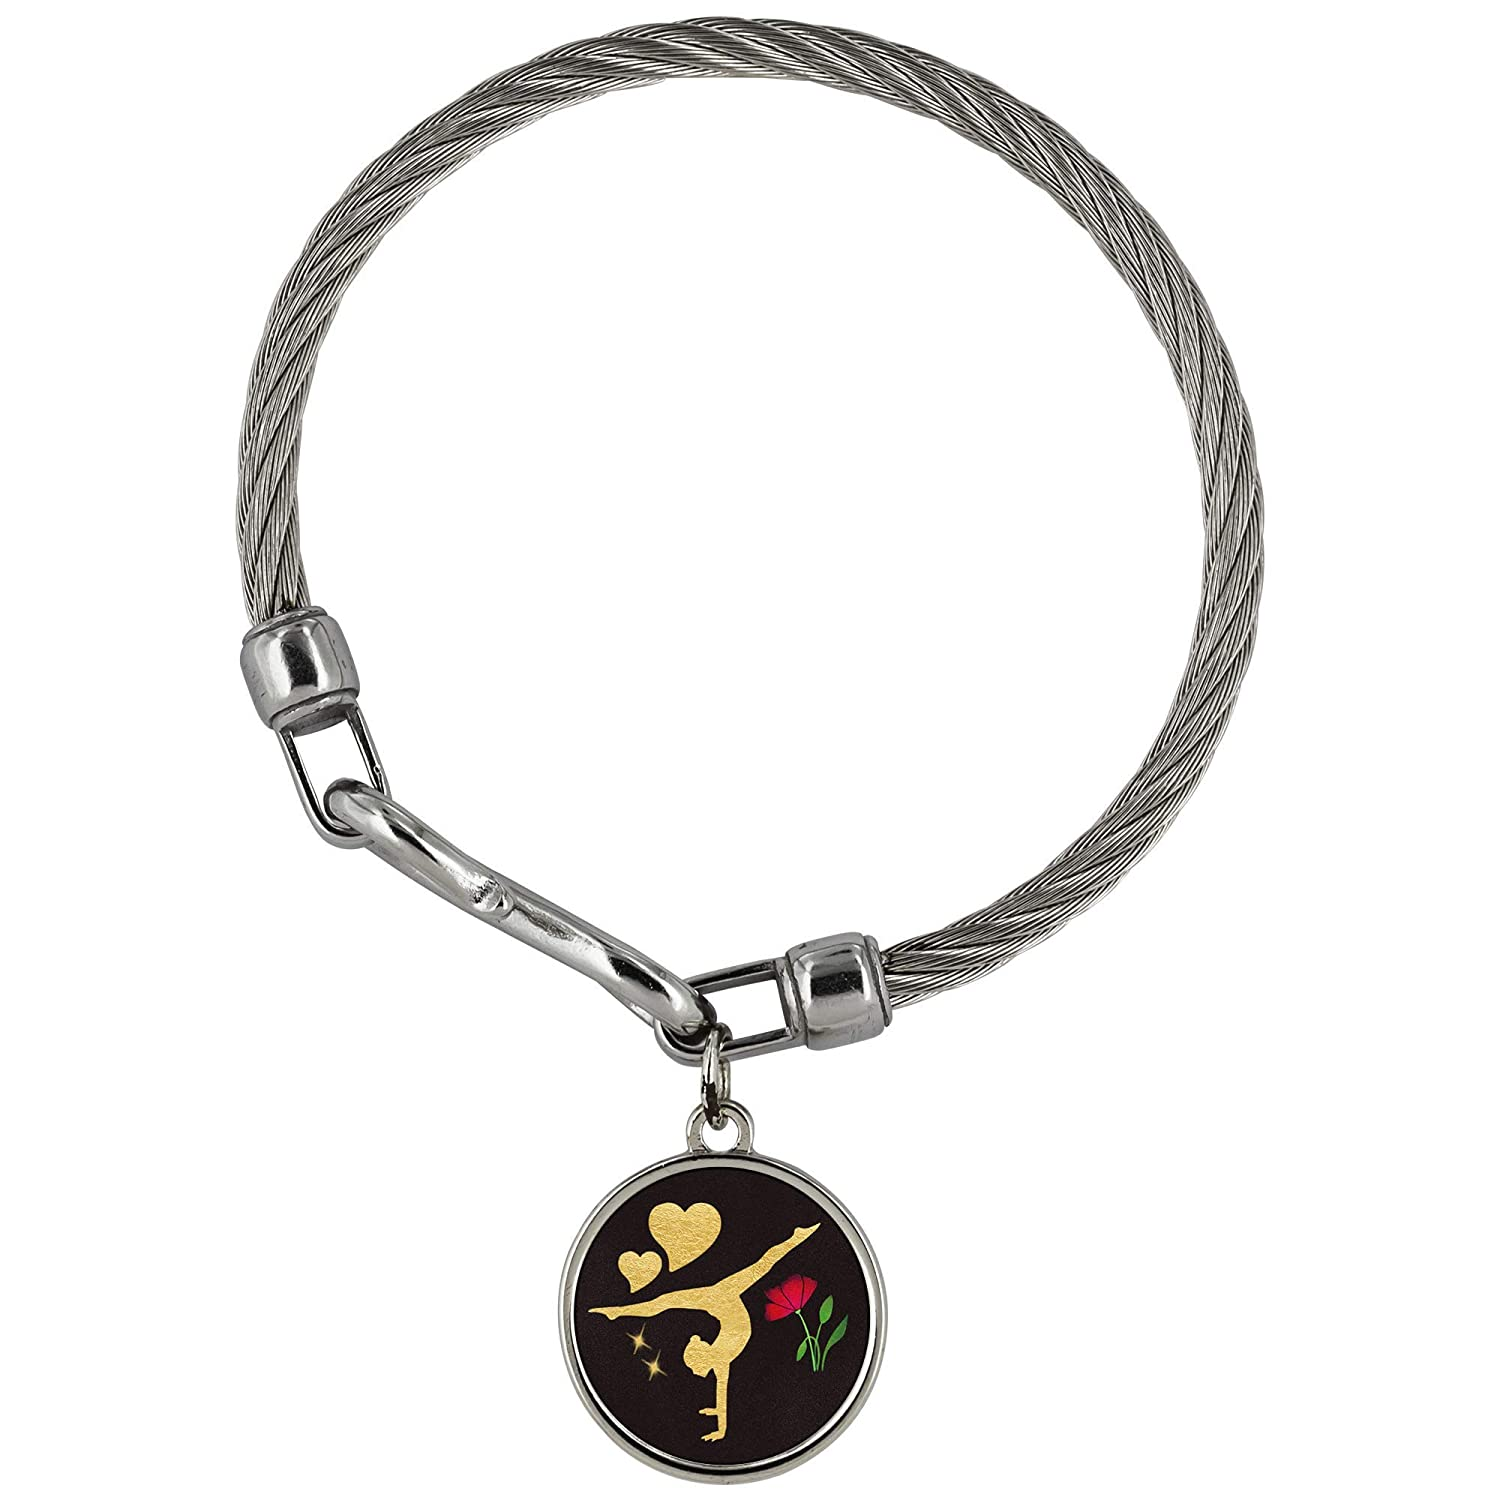 SmallWonderGifts Best Gymnastics Charm Bracelet for Girls and Women Cute Pendant Birthday Love Present with Pouch